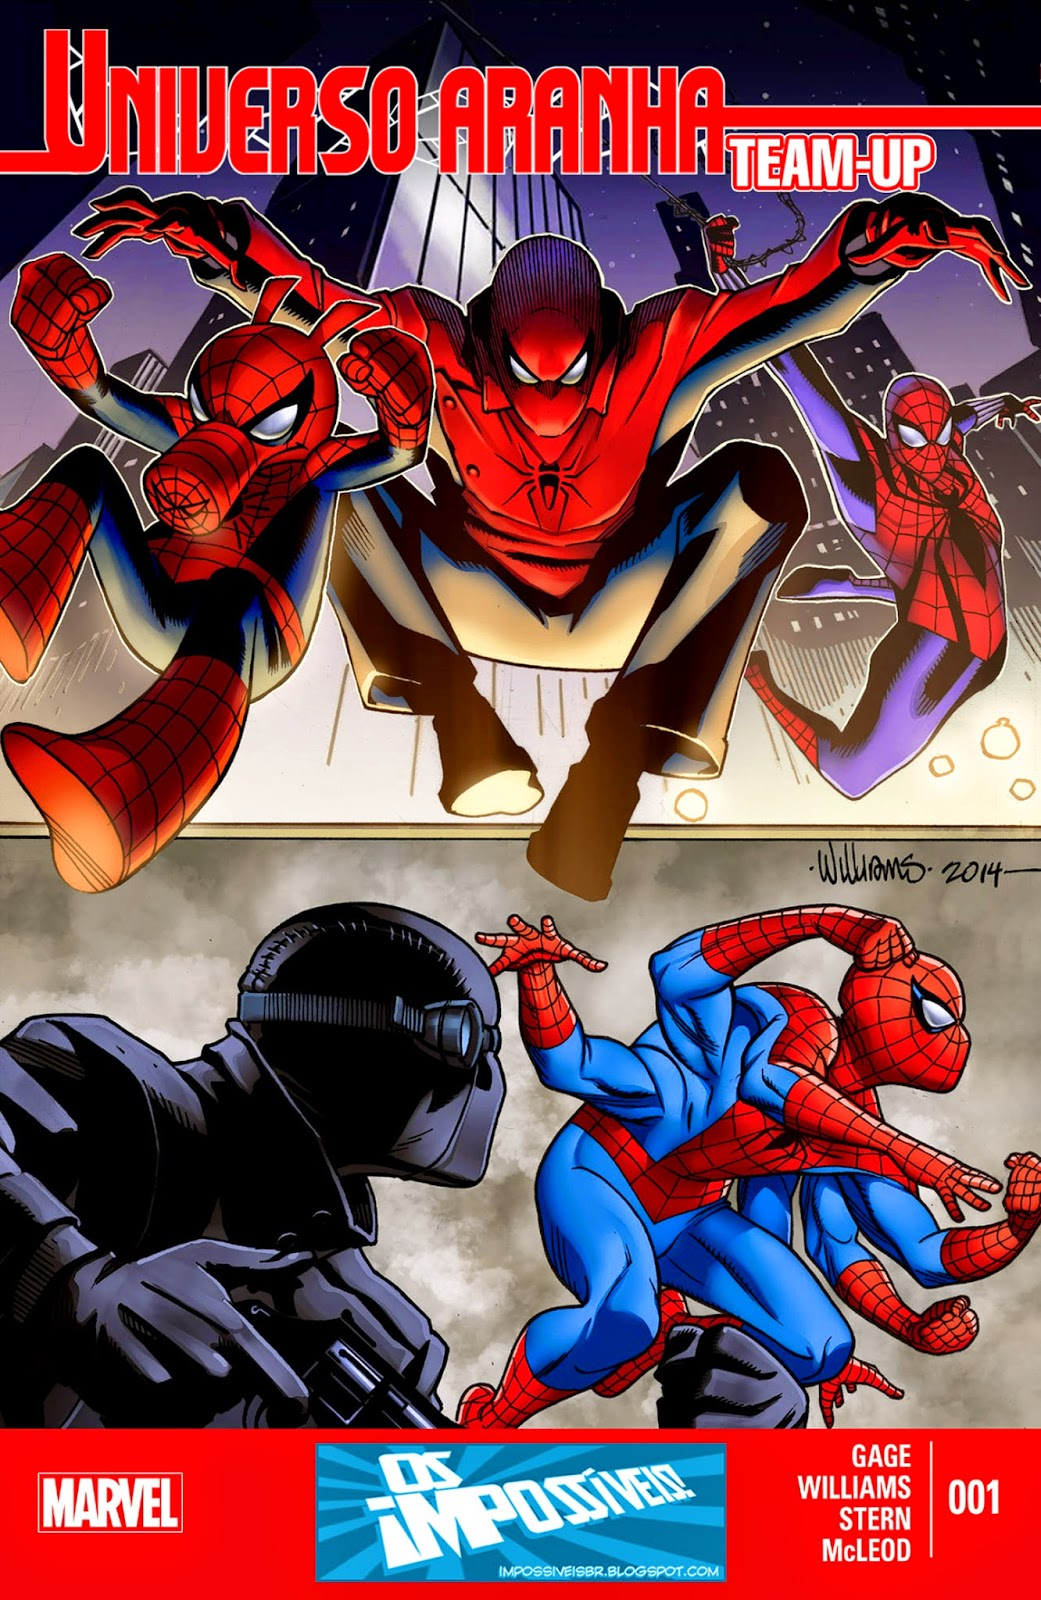 Universo-Aranha Team-Up #1